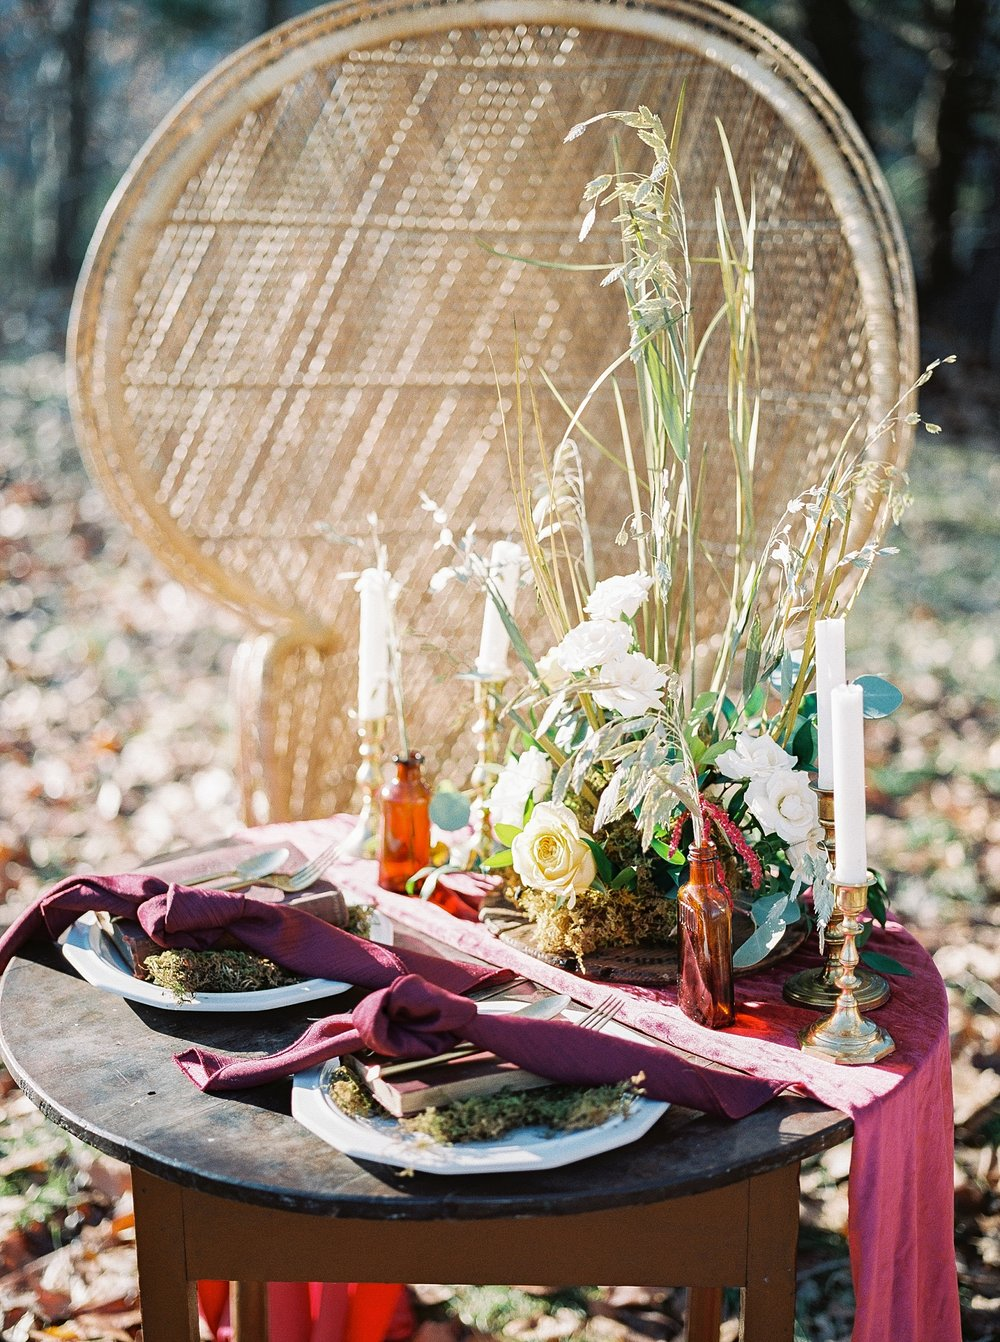 Snowy Winter Wedding at Wildcliff Events Lake With Earthy Jewel Tones and Organic Refined Style by Kelsi Kliethermes Photography Kansas City Missouri Wedding Photographer_0148.jpg